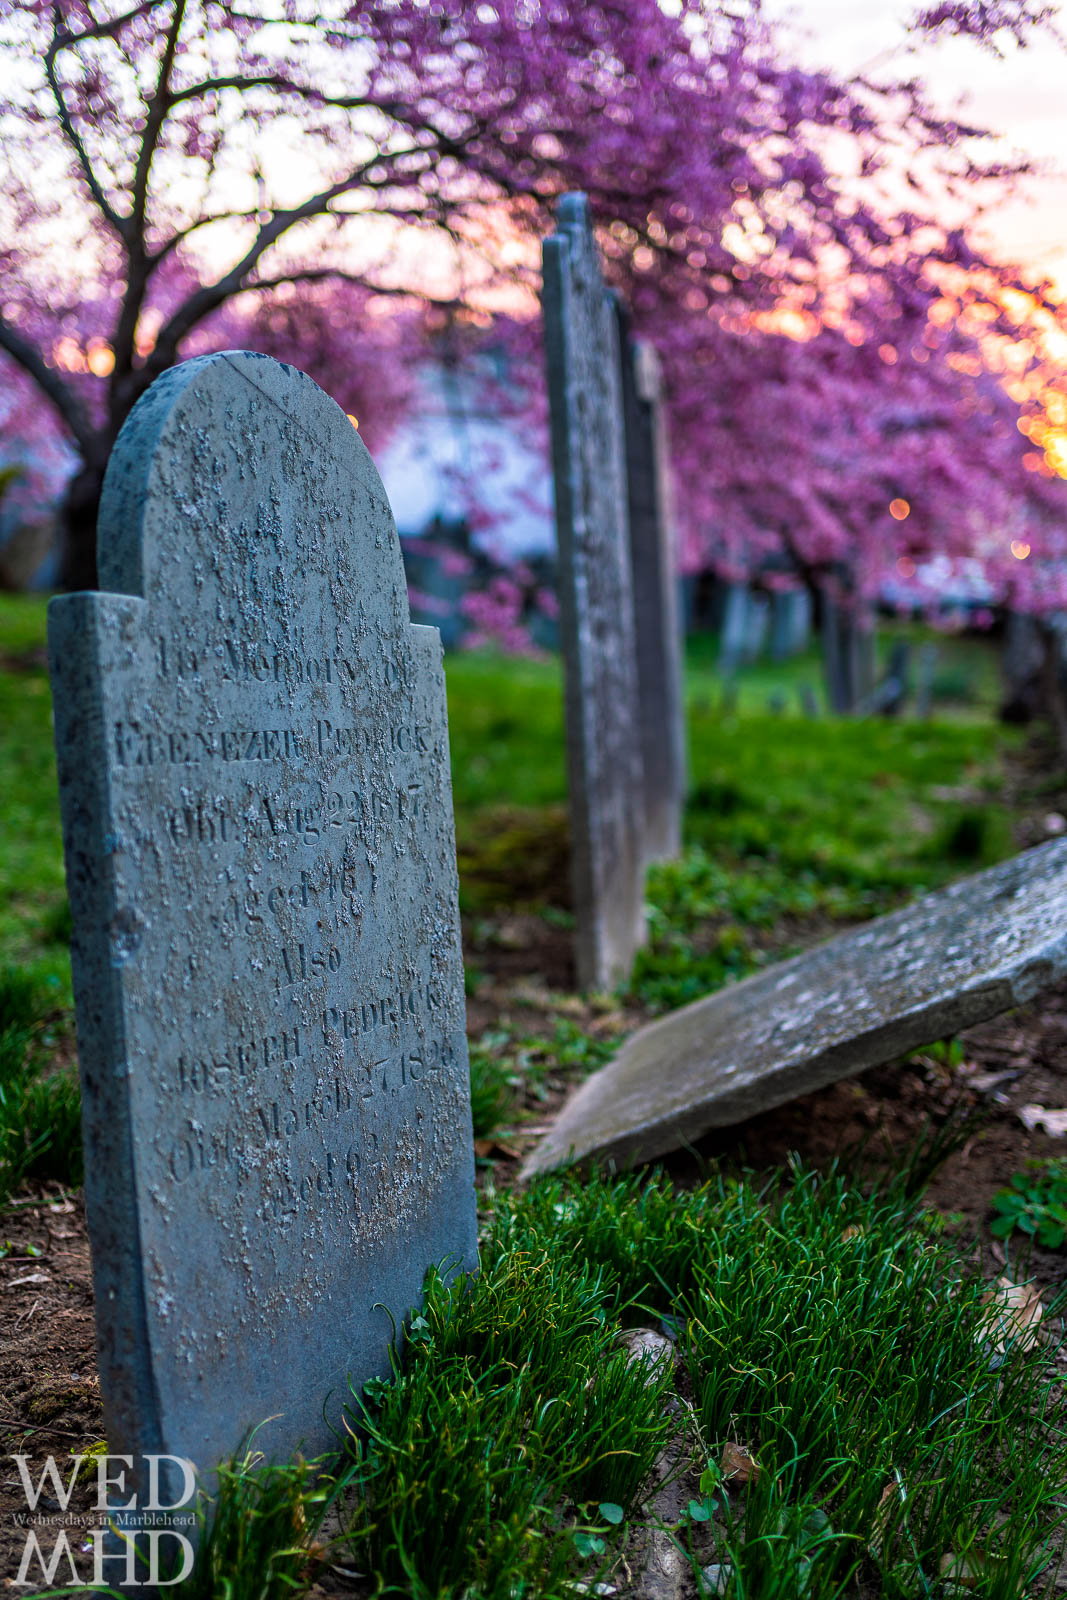 Back to Harris Street and this sunrise capture of tombstones and cherry blossoms on a spring morning in Marblehead